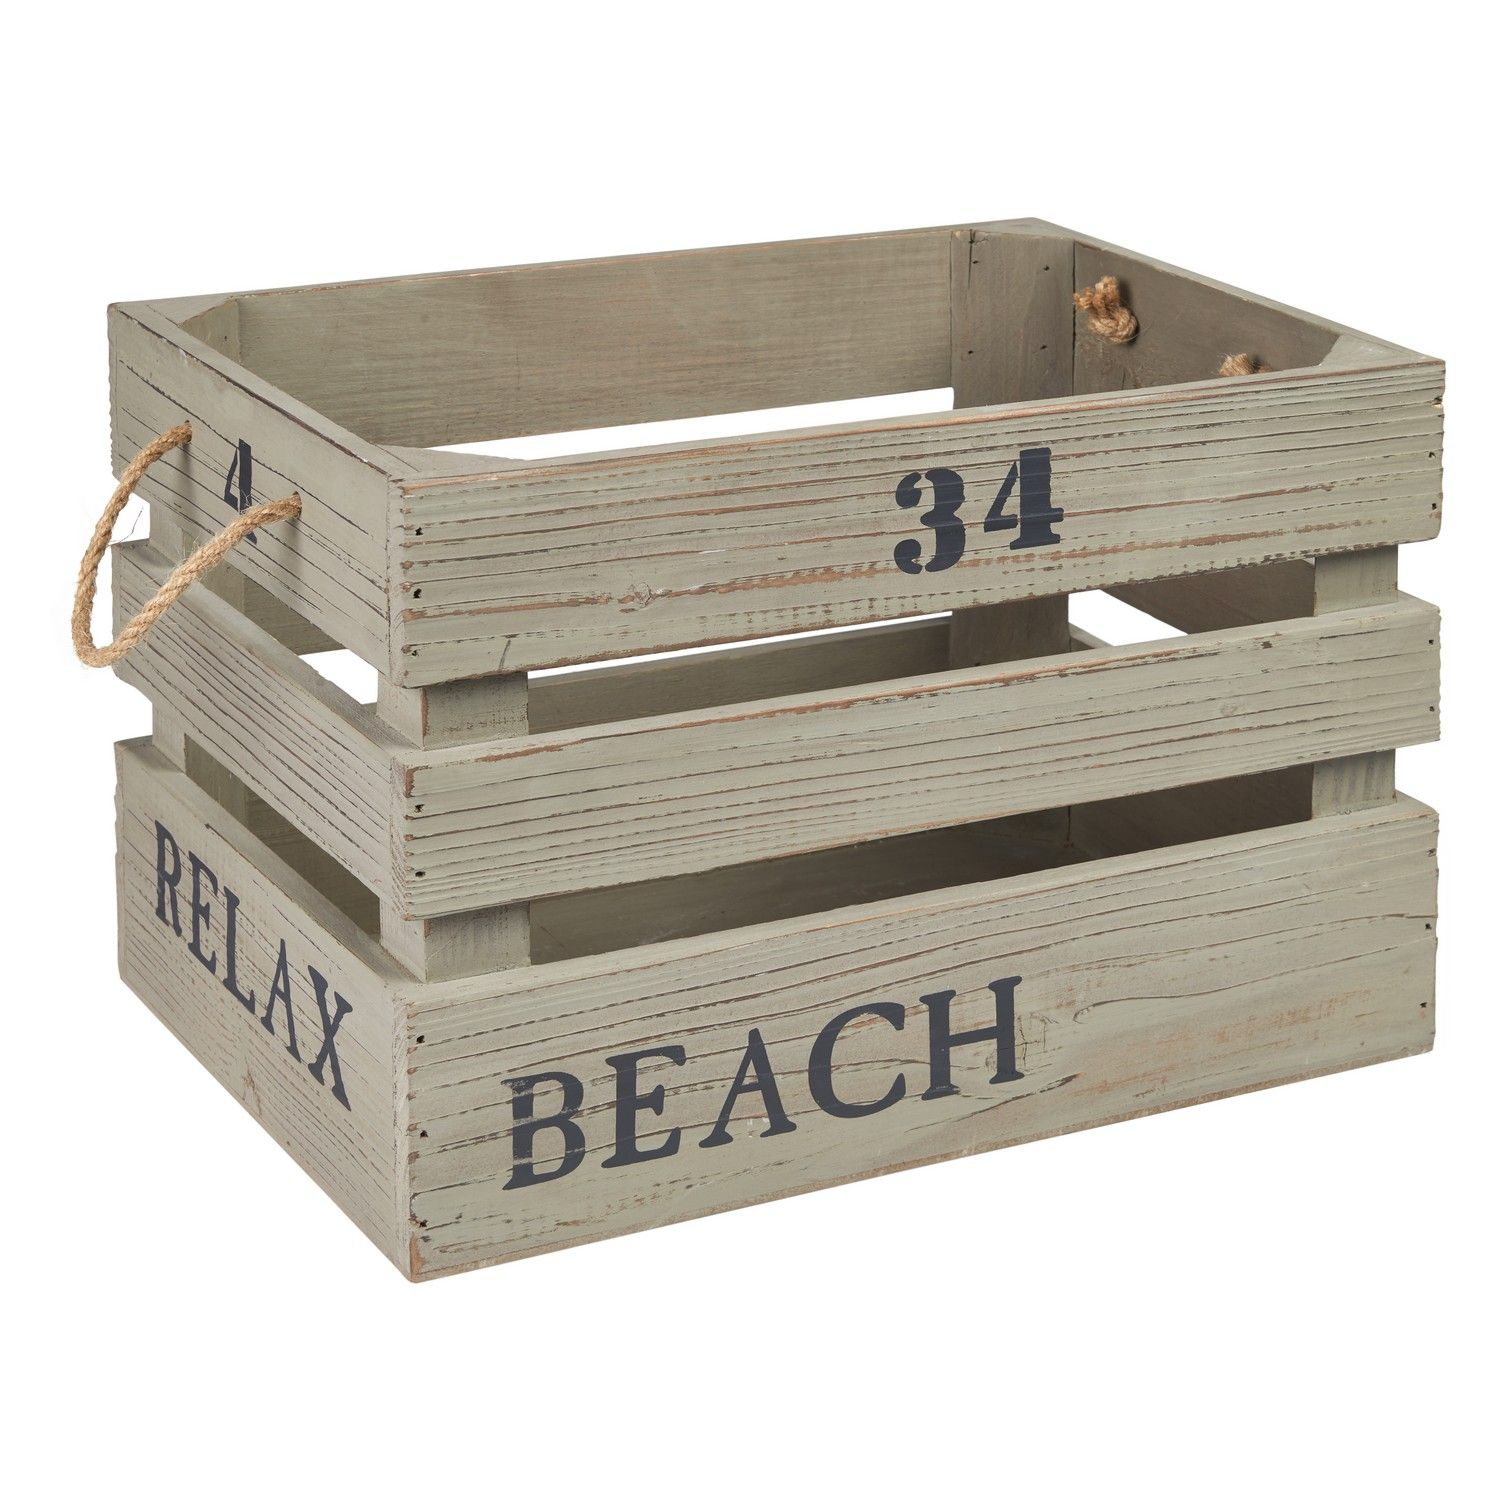 Buybeach look storage box crate decorative storage the range home ideas pinterest - Decorative wooden crates ...